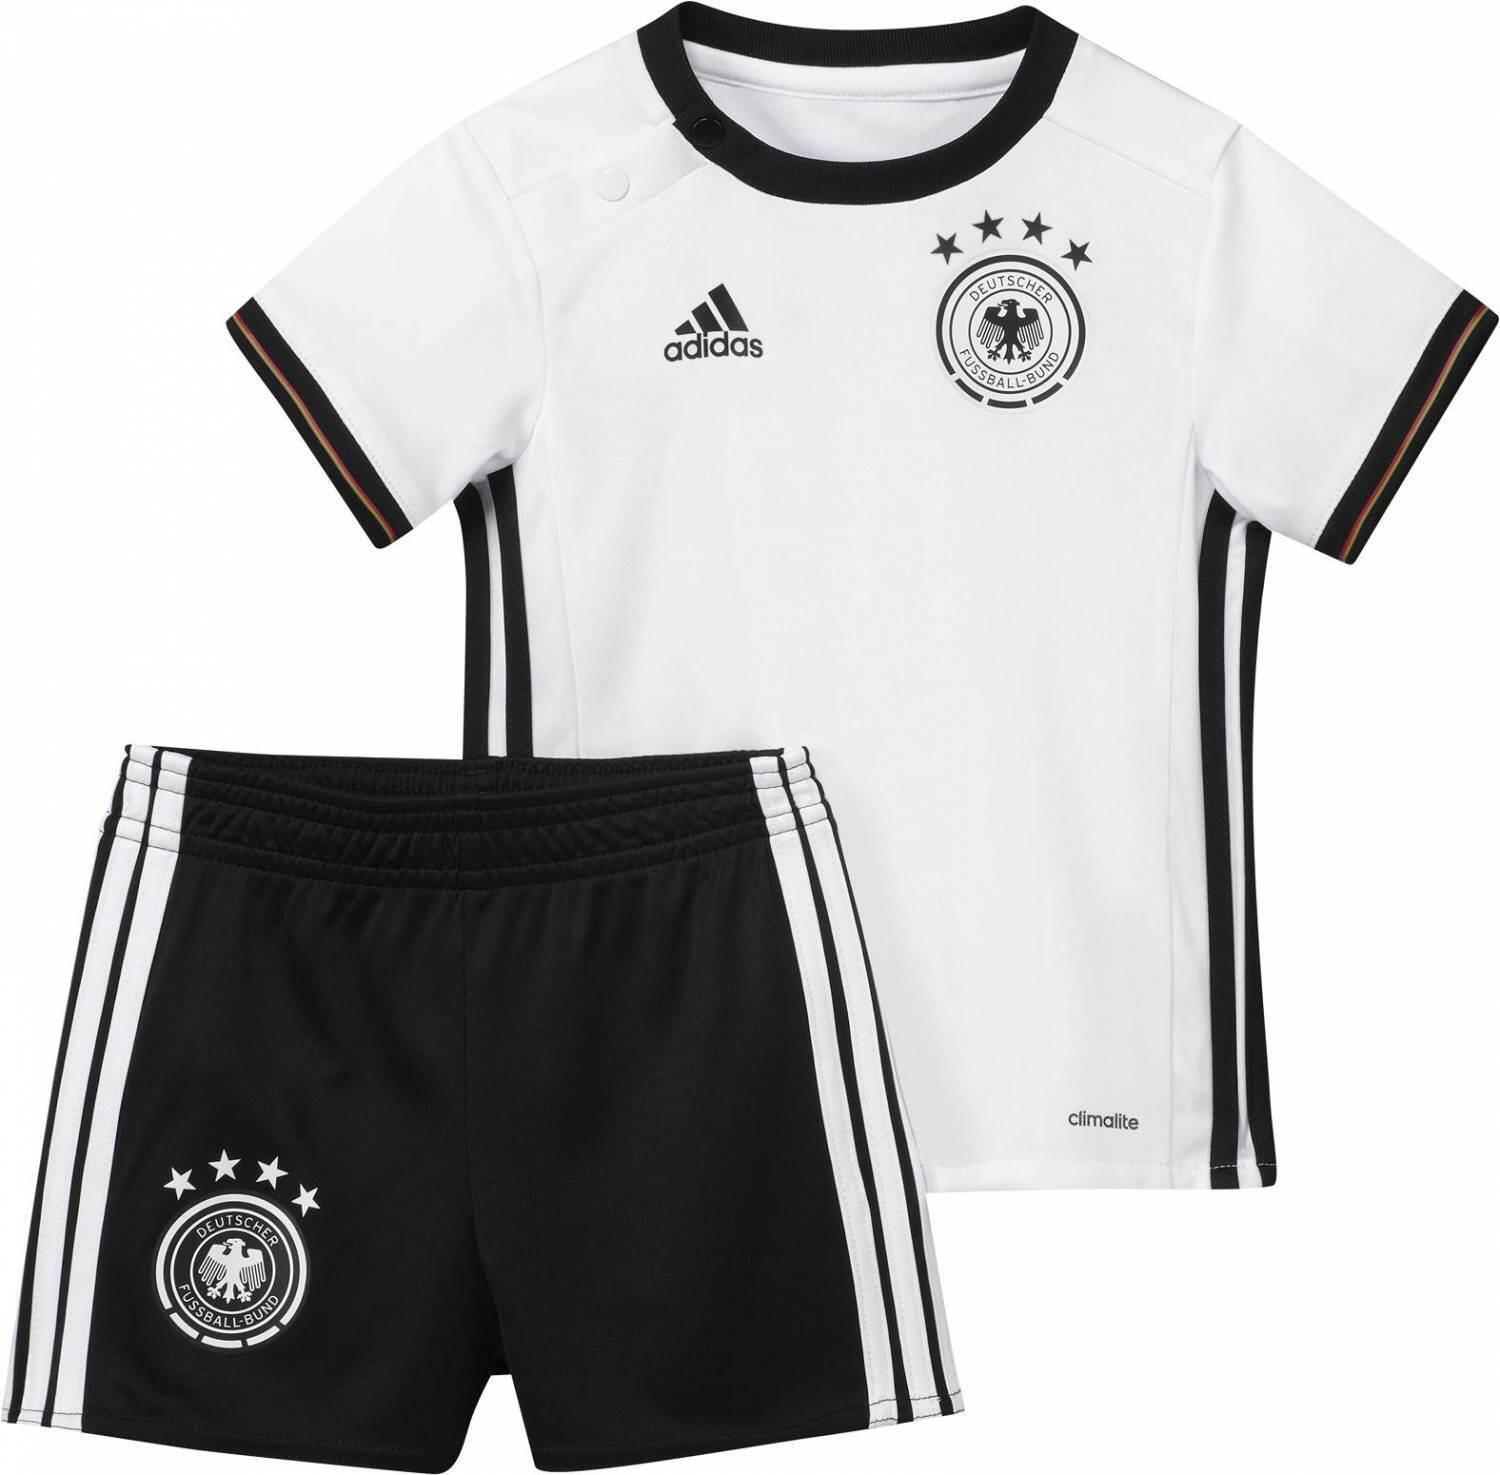 adidas-dfb-home-baby-kit-set-em-2016-gr-ouml-szlig-e-68-white-black-